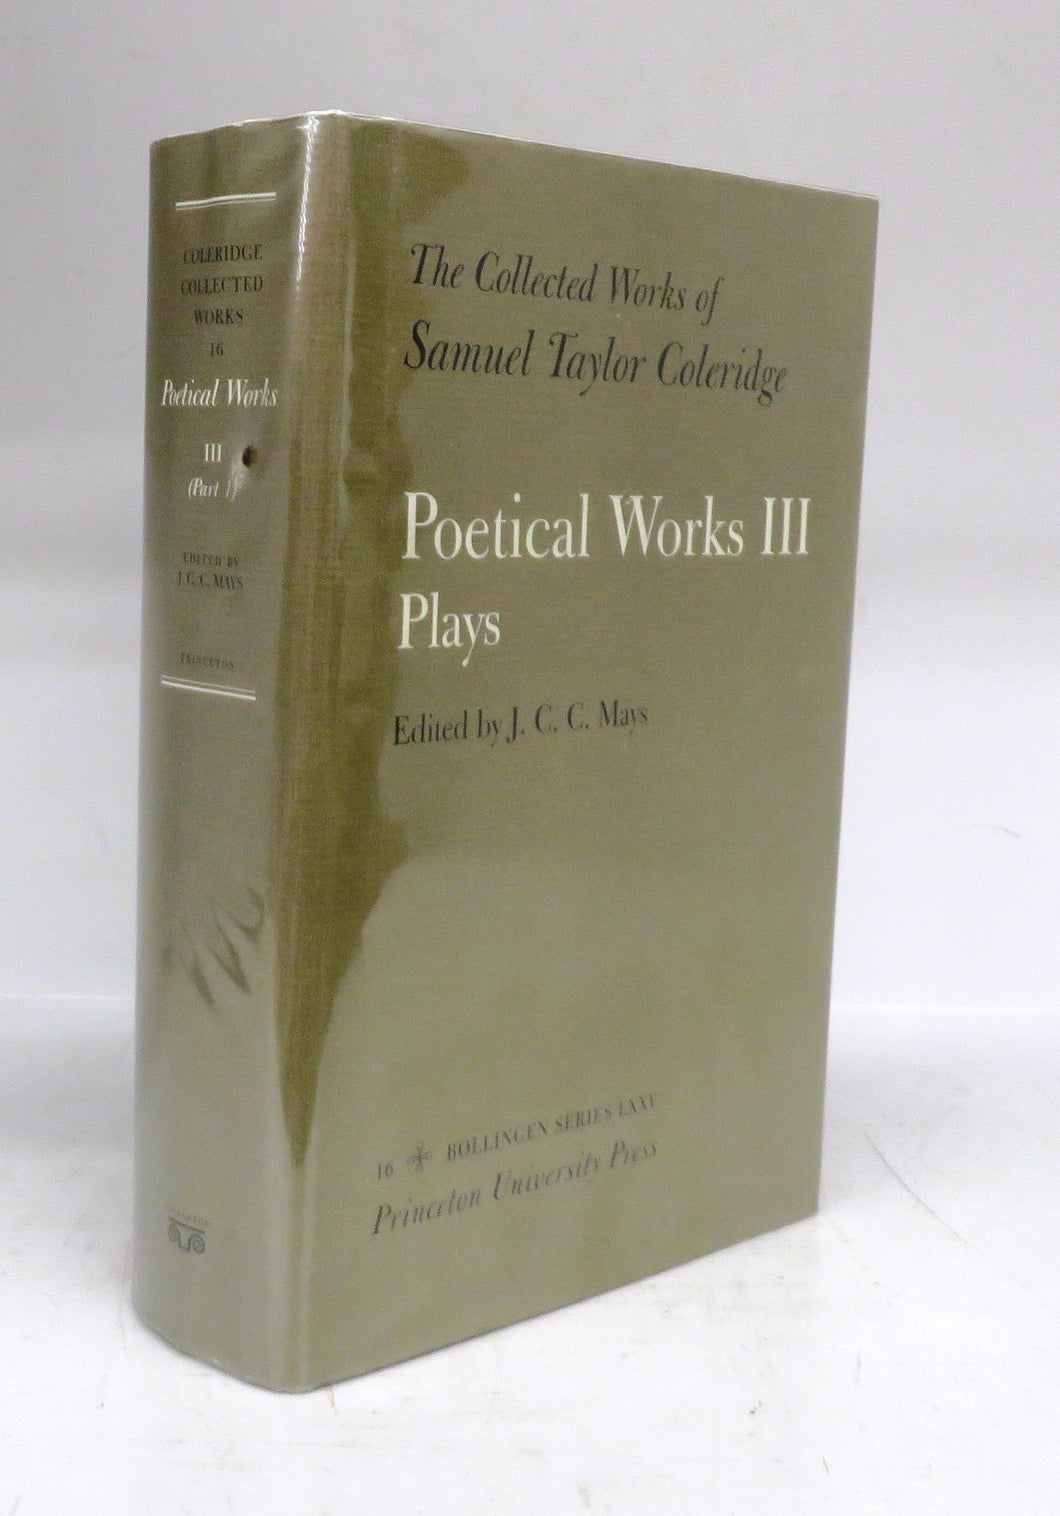 The Collected Works of Samuel Taylor Coleridge. Poetical Works III: Plays. Part I